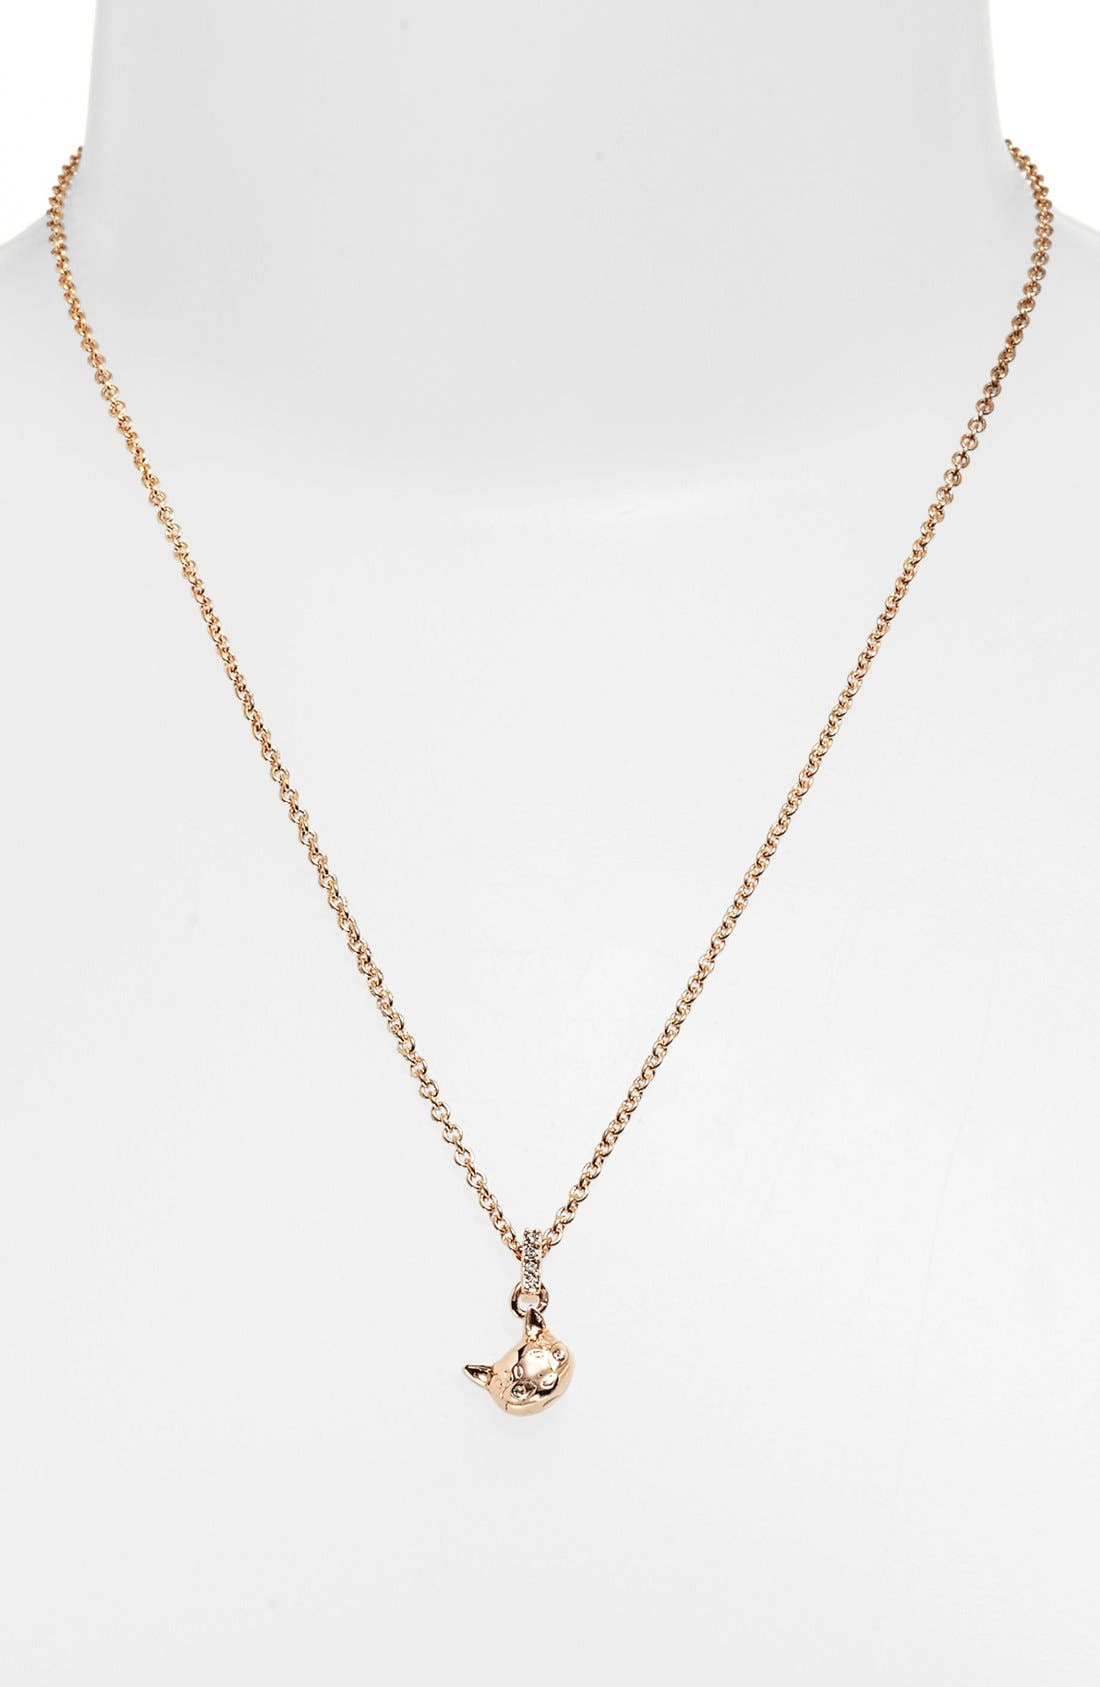 Main Image - MARC BY MARC JACOBS 'Dynamite - Rue' Cat Pendant Necklace